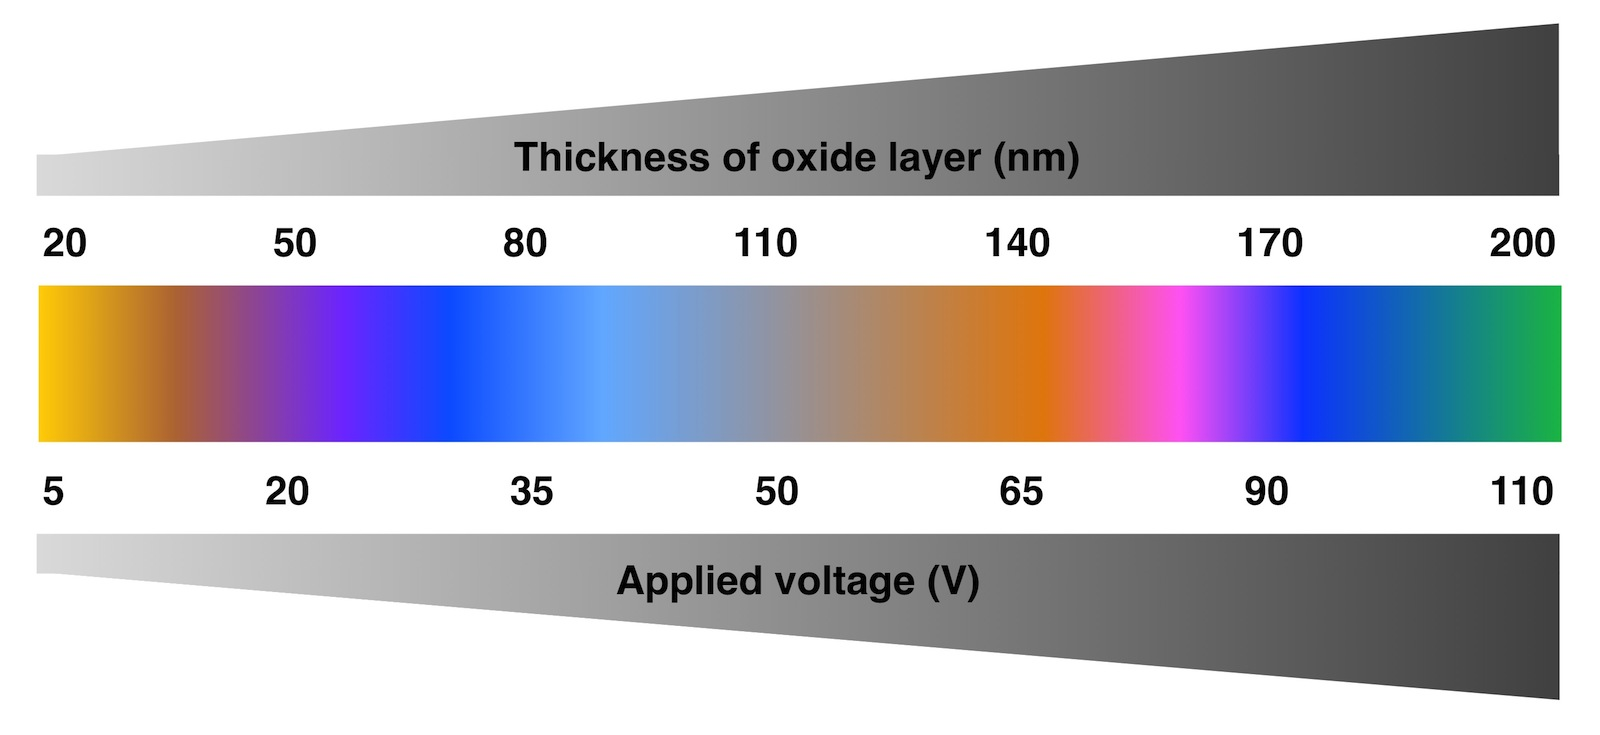 Figure showing the relationship between the voltage used for anodisation, the thickness of the oxide layer formed, and the colour that is perceived.